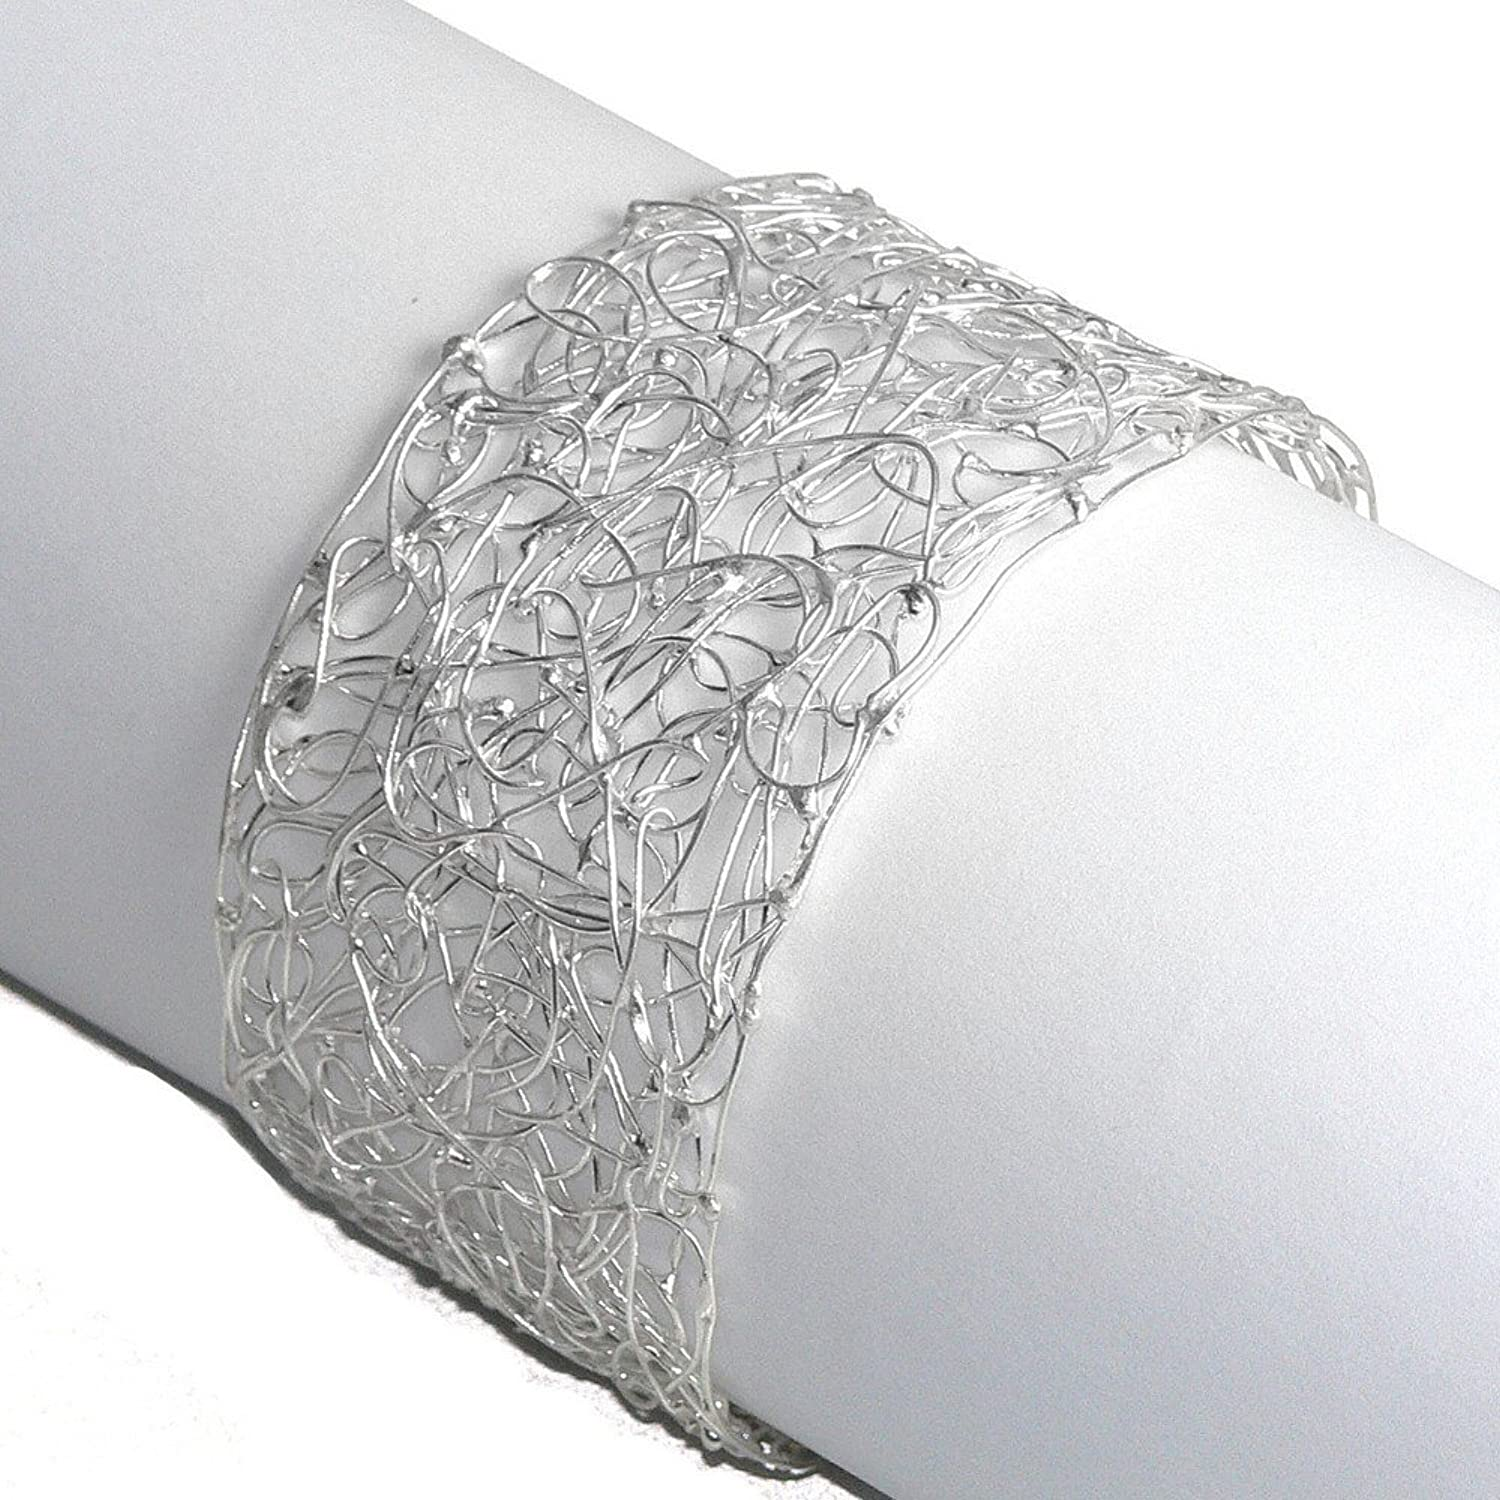 Franki Baker Delicate Statement Cuff Style Bracelet Bangle of Finely Woven 925 Sterling Silver Wire rogmE